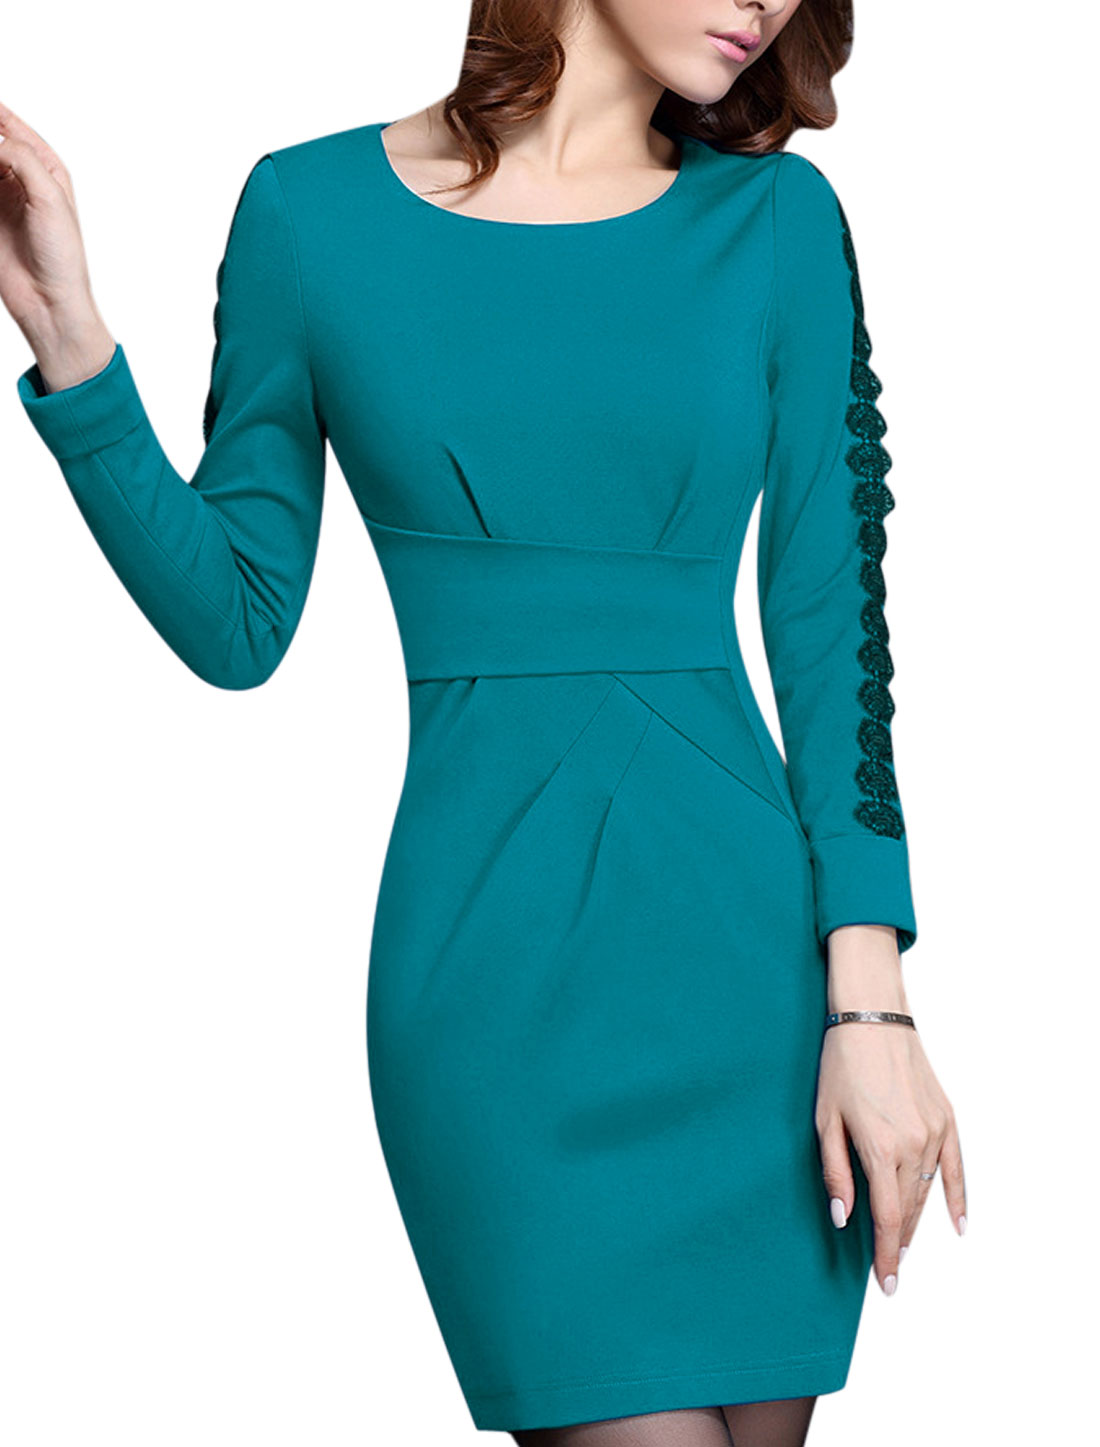 Women Crochet Panel Long Sleeve Hidden Zip Side Pencil Dress Turquoise M